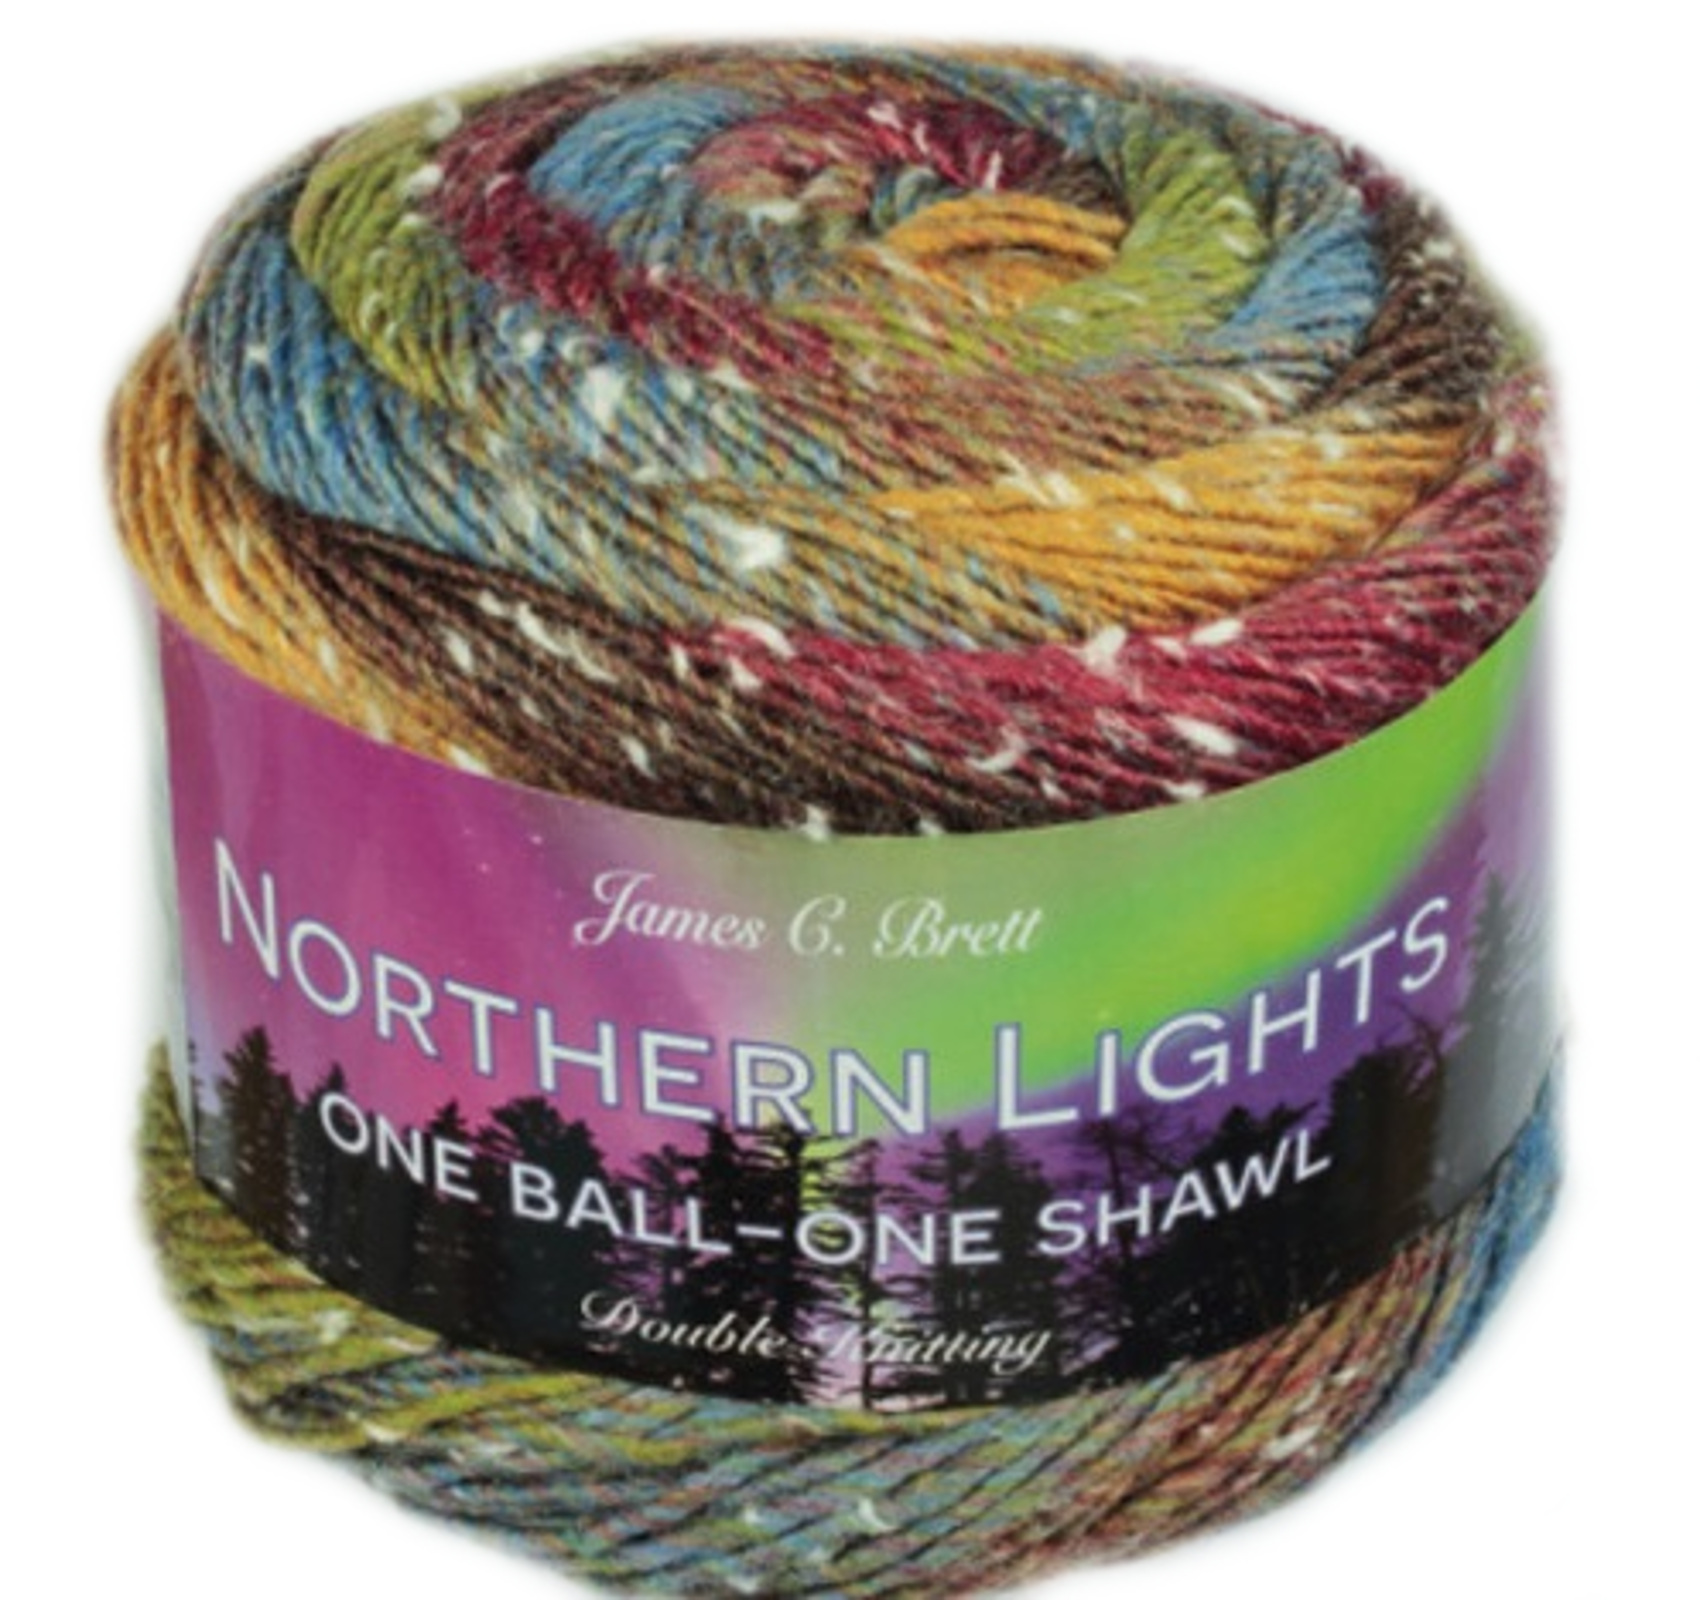 James C NL0 Brett Glisten Northern Lights Double Knitting Wool//Yarn 150g Cake